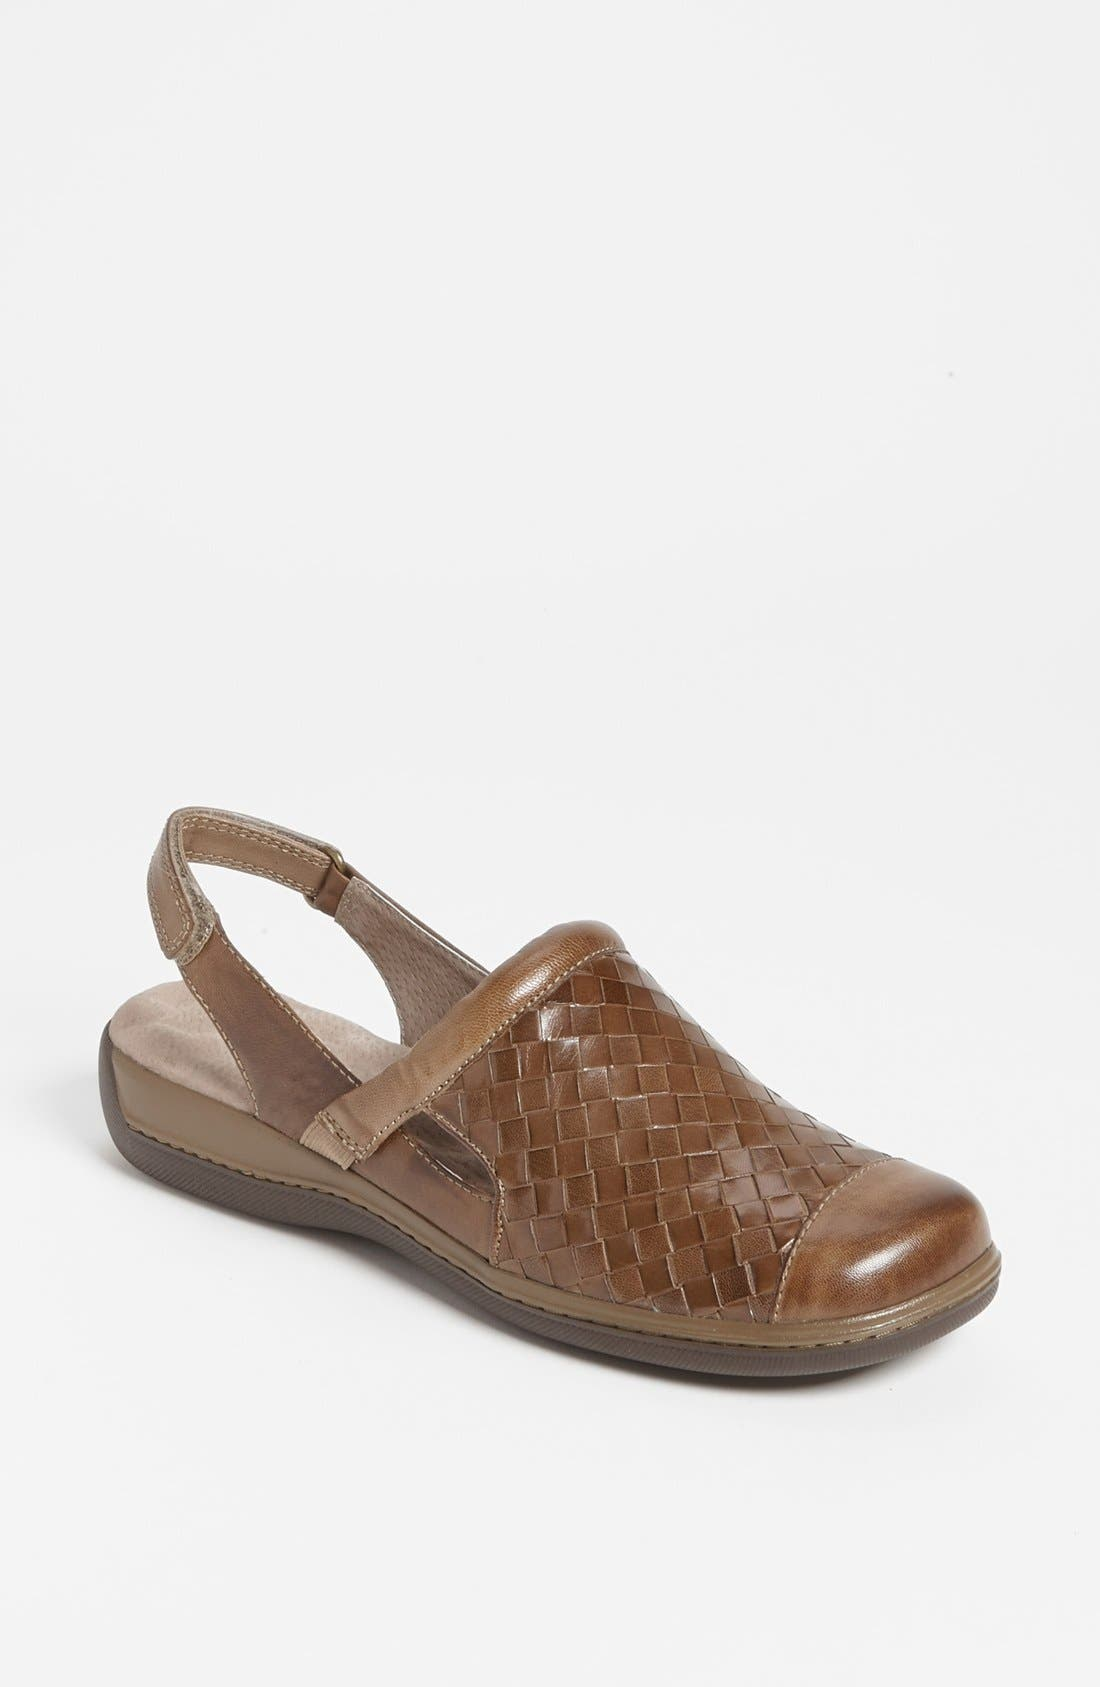 A burnished leather clog with a woven, hand-finished upper fuses effortless style with all-day comfort. SoftWalk\\\'s patented eggcrate footbed keeps your heels happy, while a thick wedge adds a smidge of stature. Style Name: Softwalk \\\'salina\\\' Clog. Style Number: 901259 1. Available in stores.